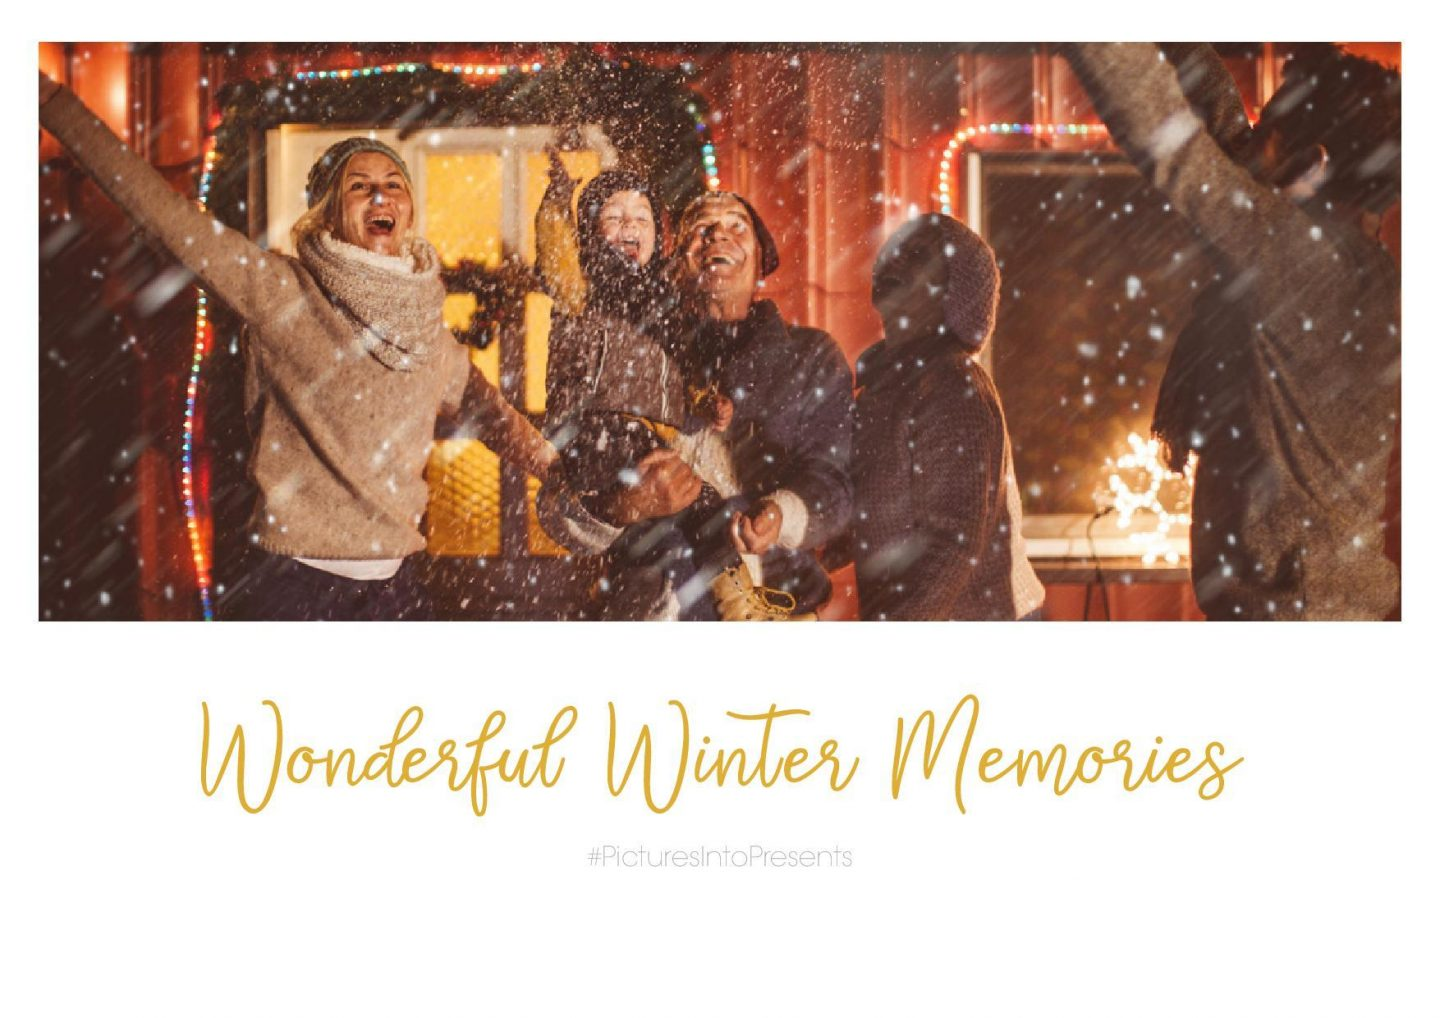 Creating winter memories